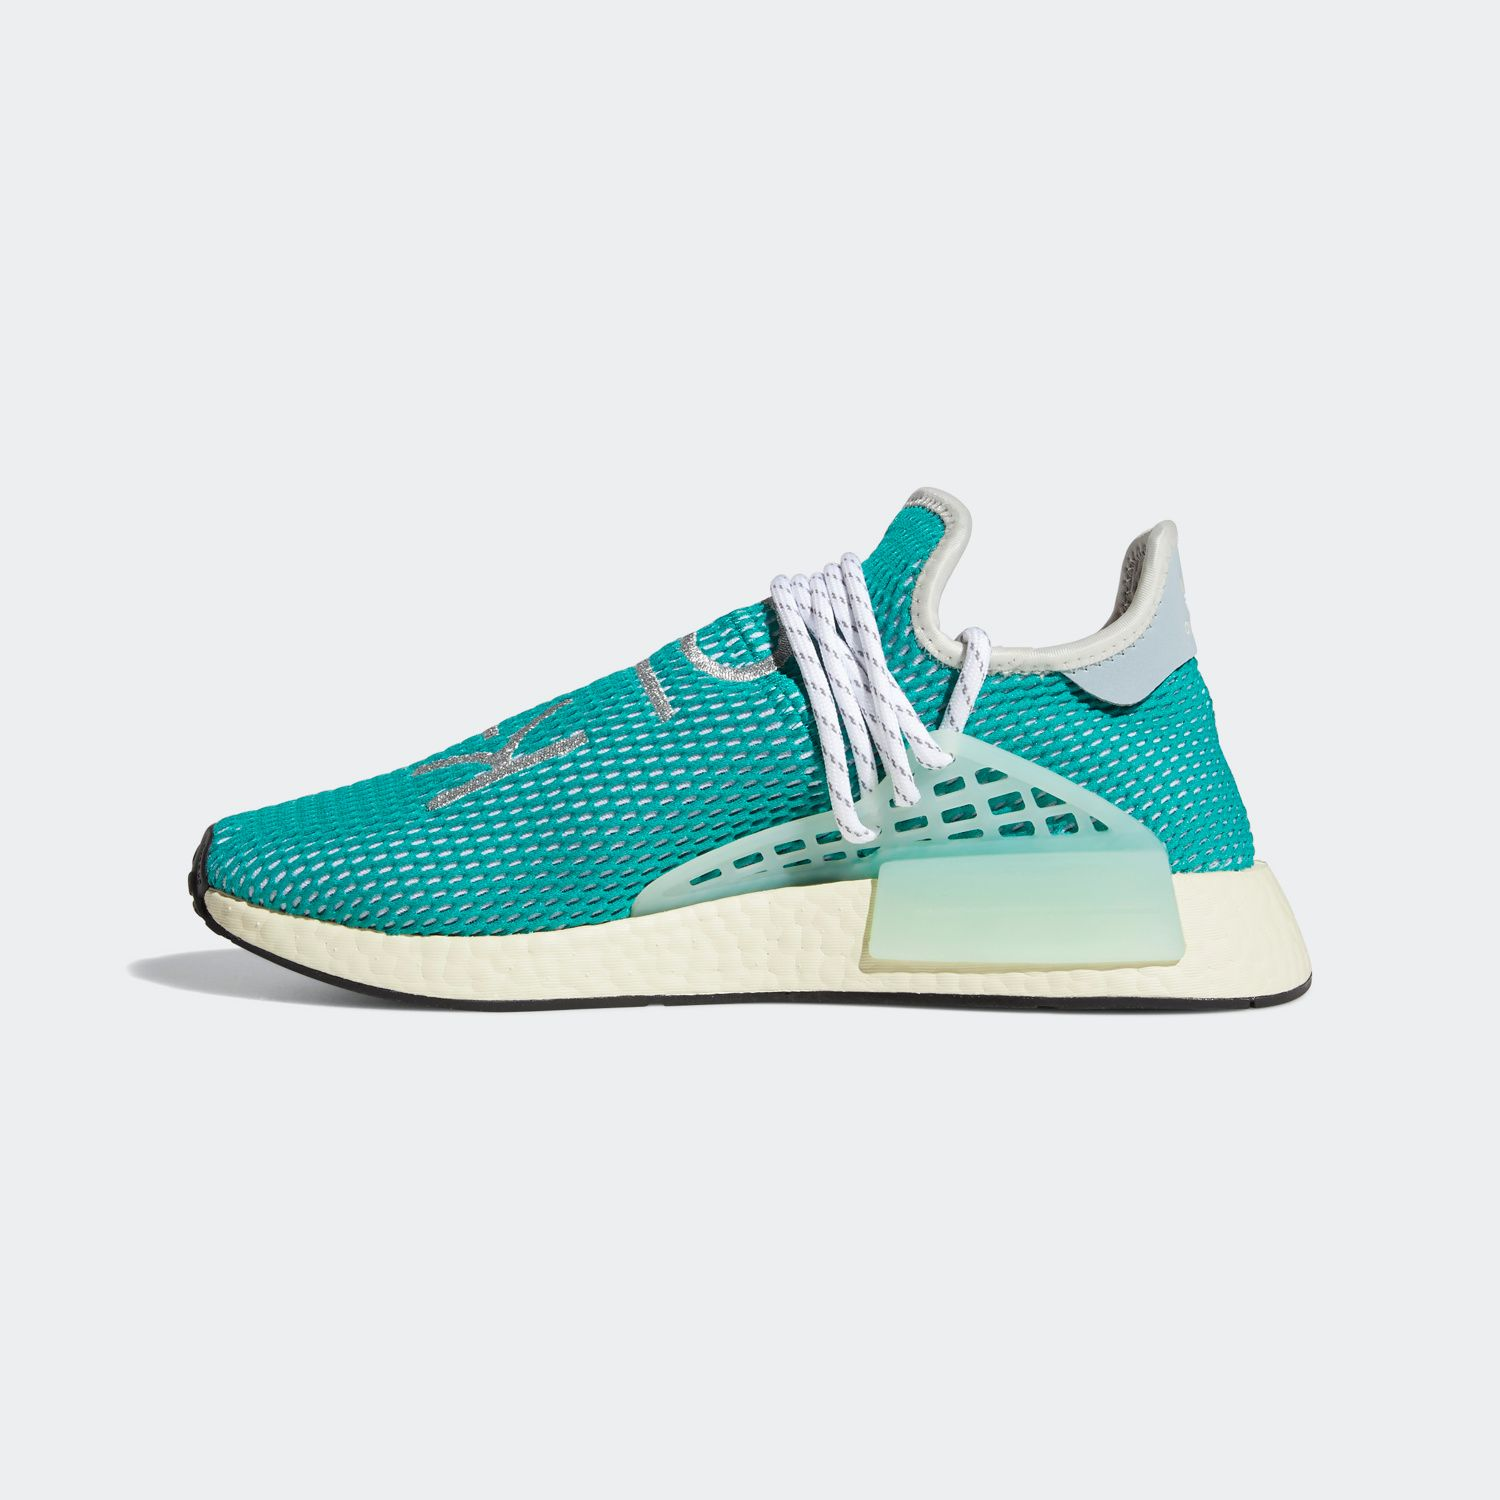 HU NMD Dash Green [2]